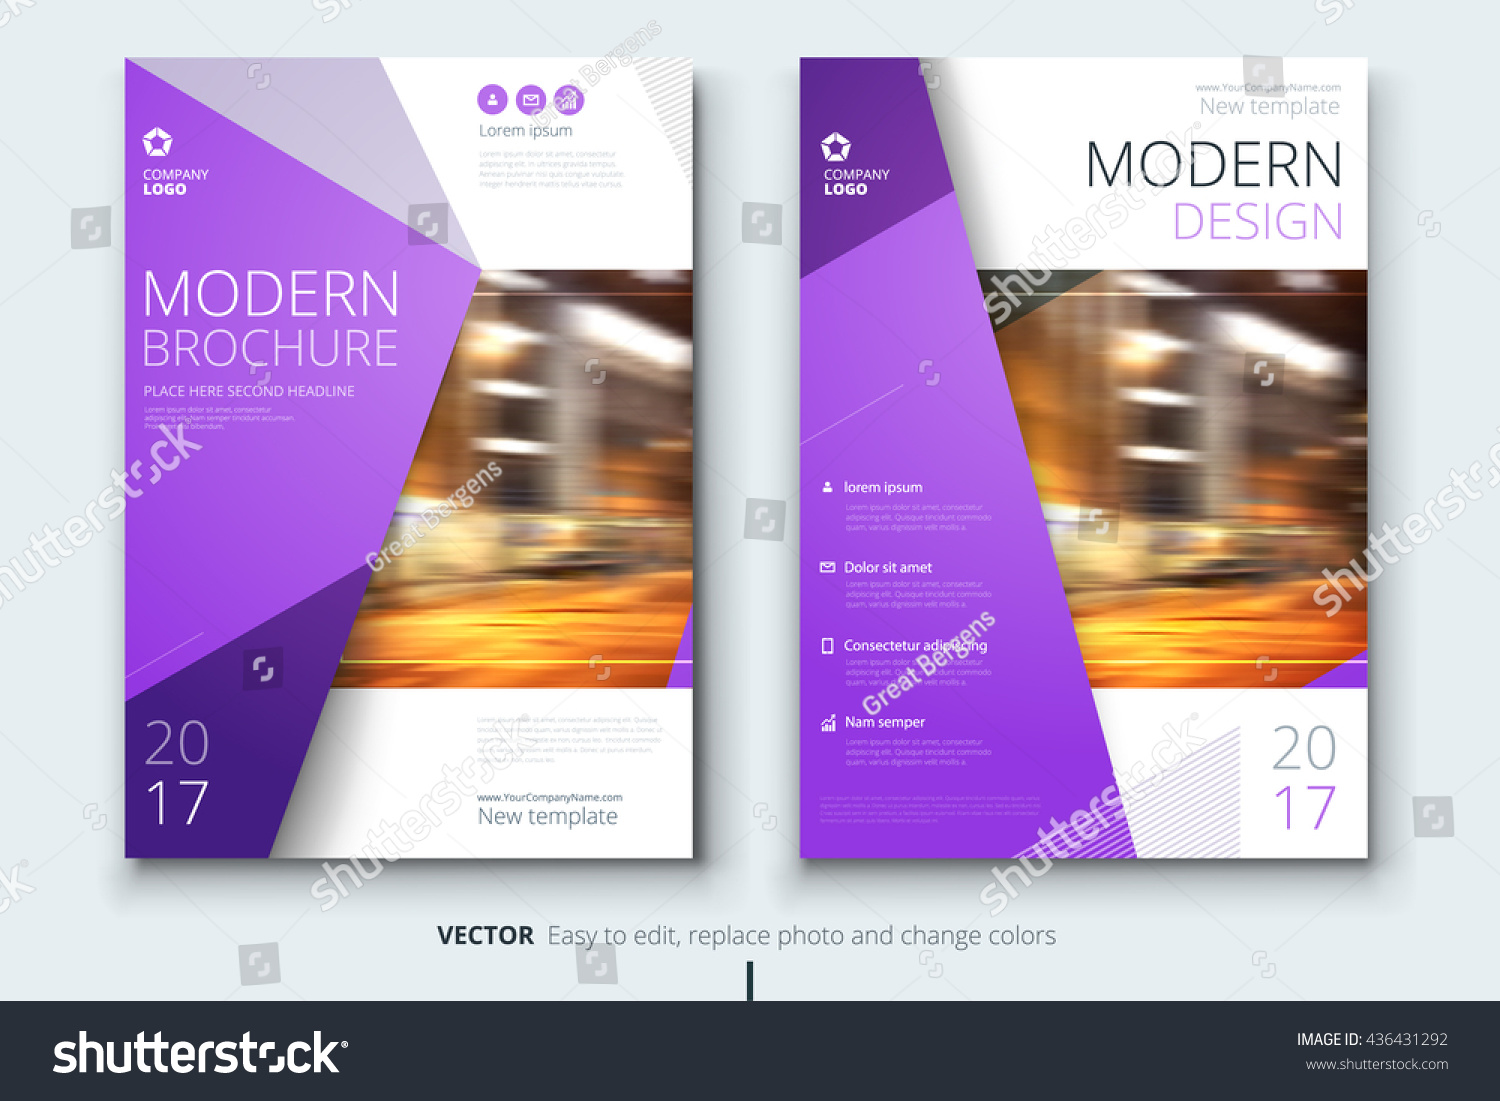 Brochure design corporate business template annual stock for Booklet brochure template